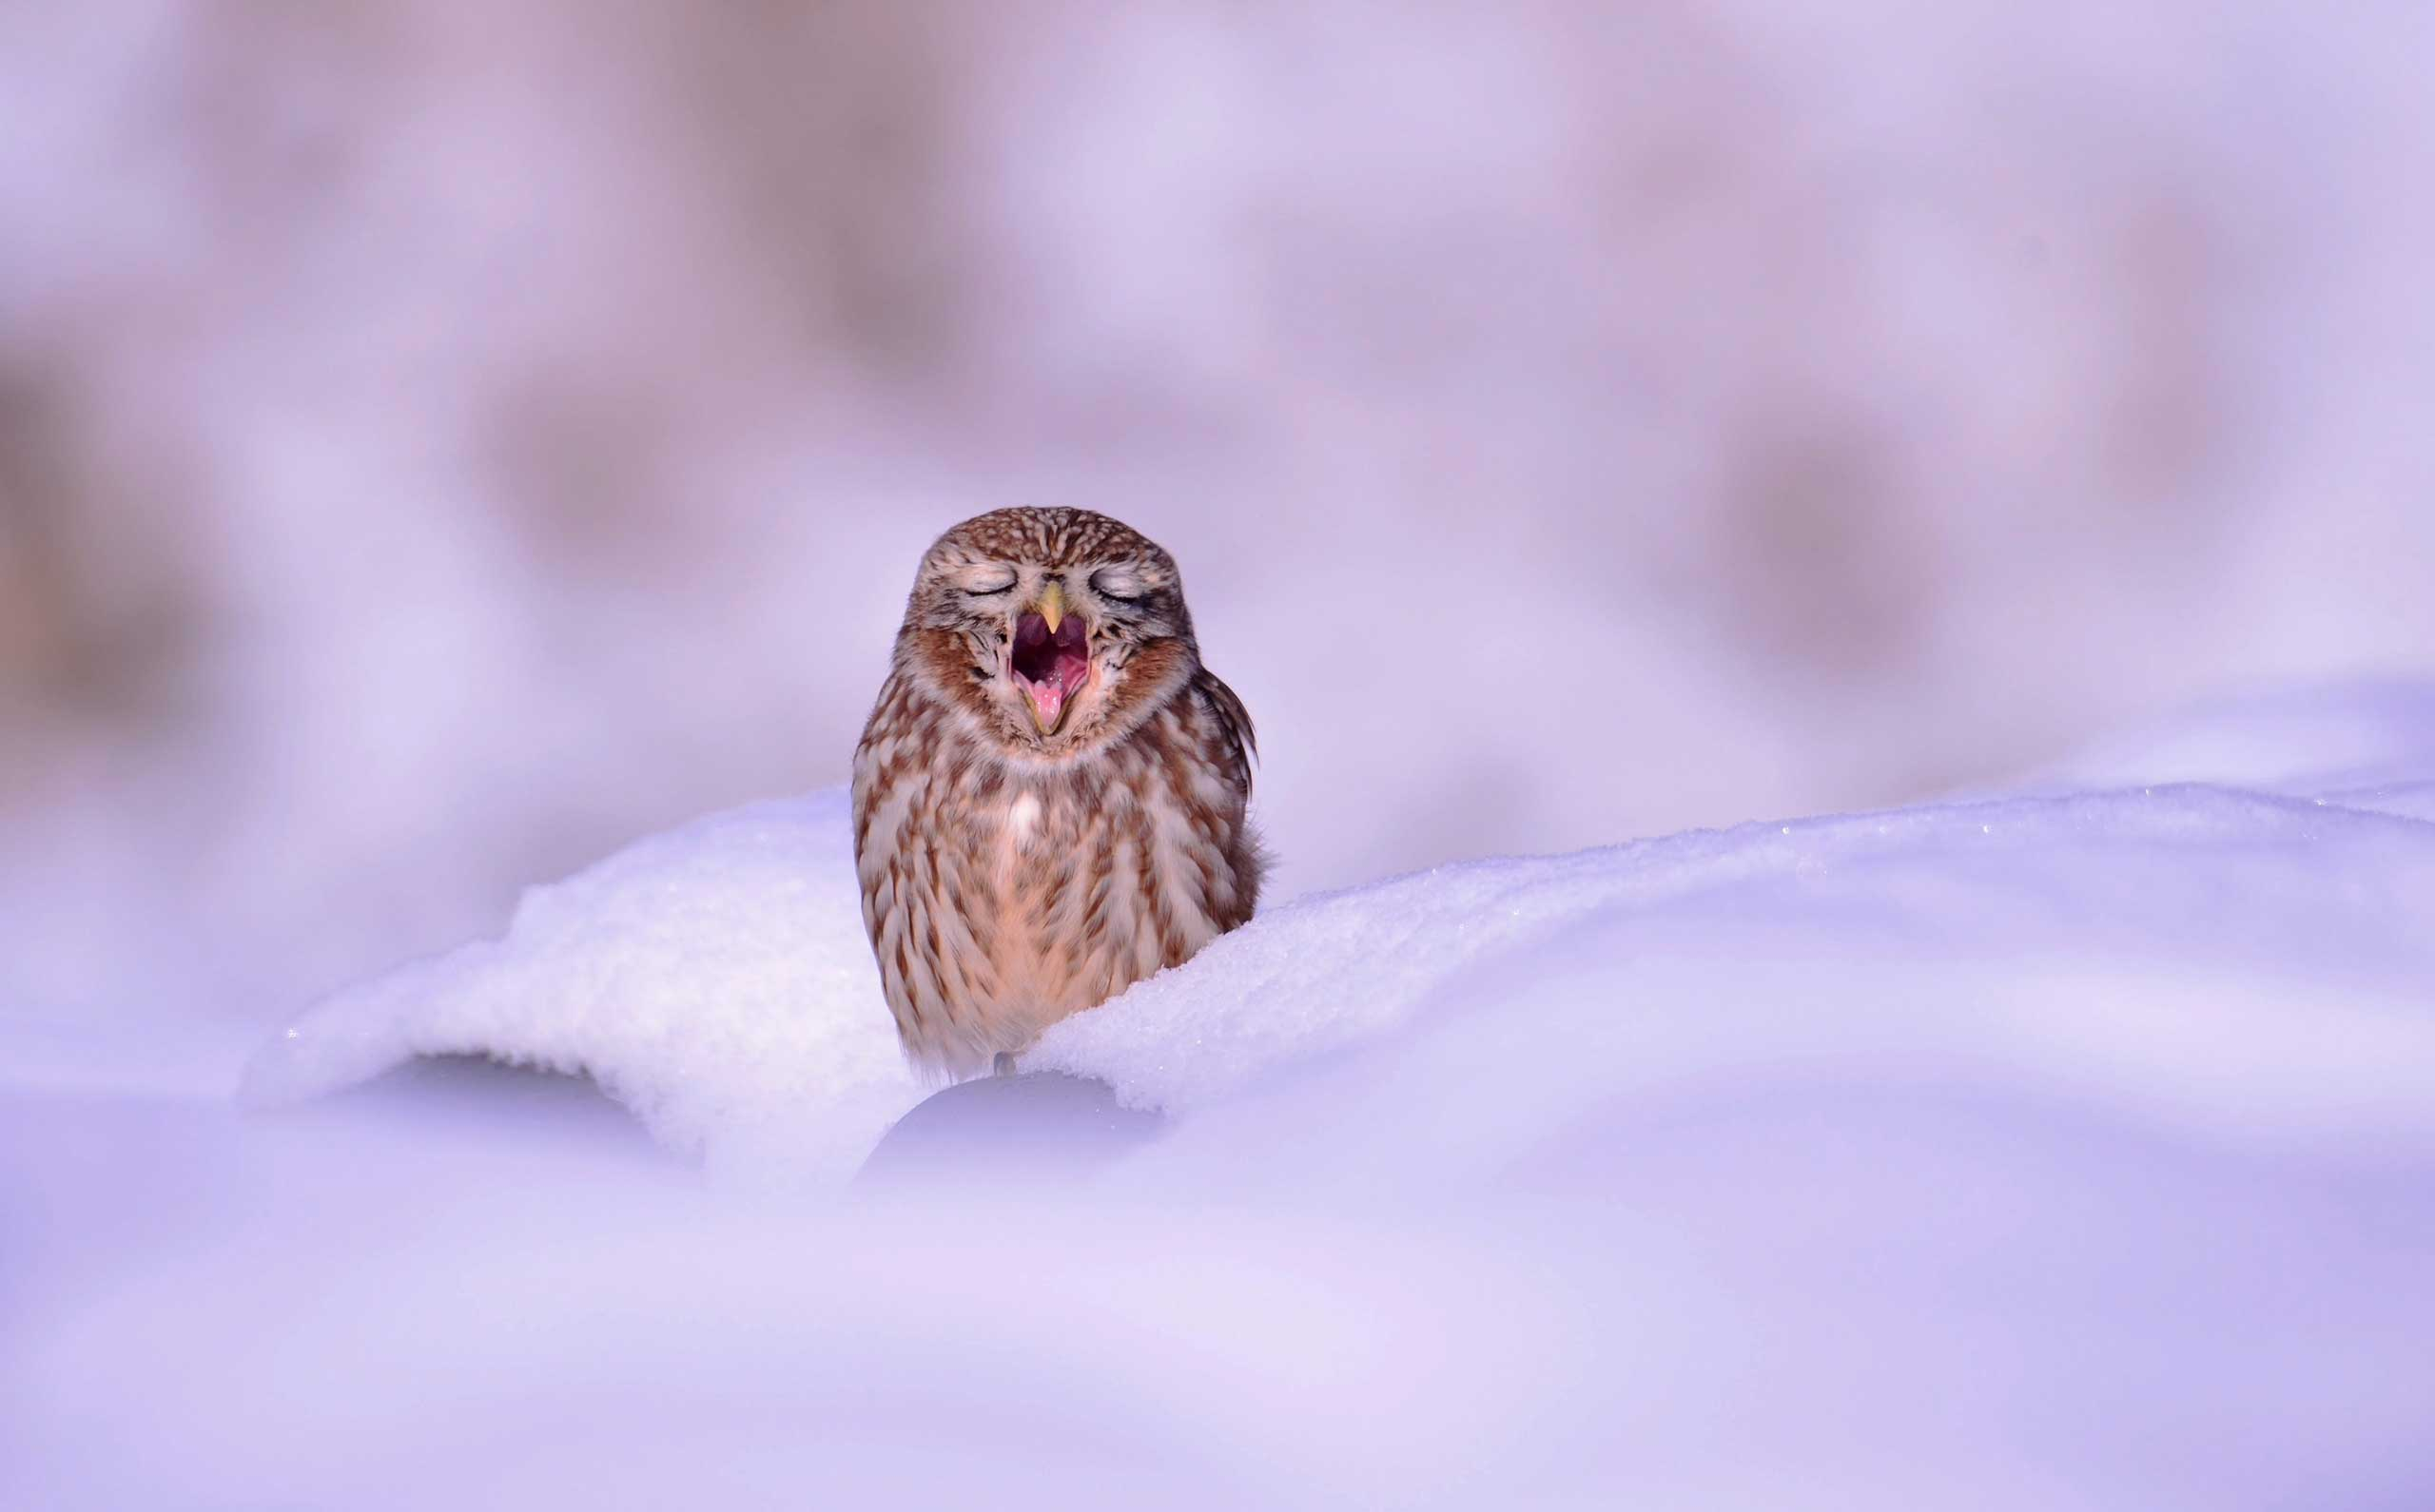 Dec. 4, 2014. A small owl yawns as it sits in the snow in Ansung City, Gyeonggi province, South Korea.